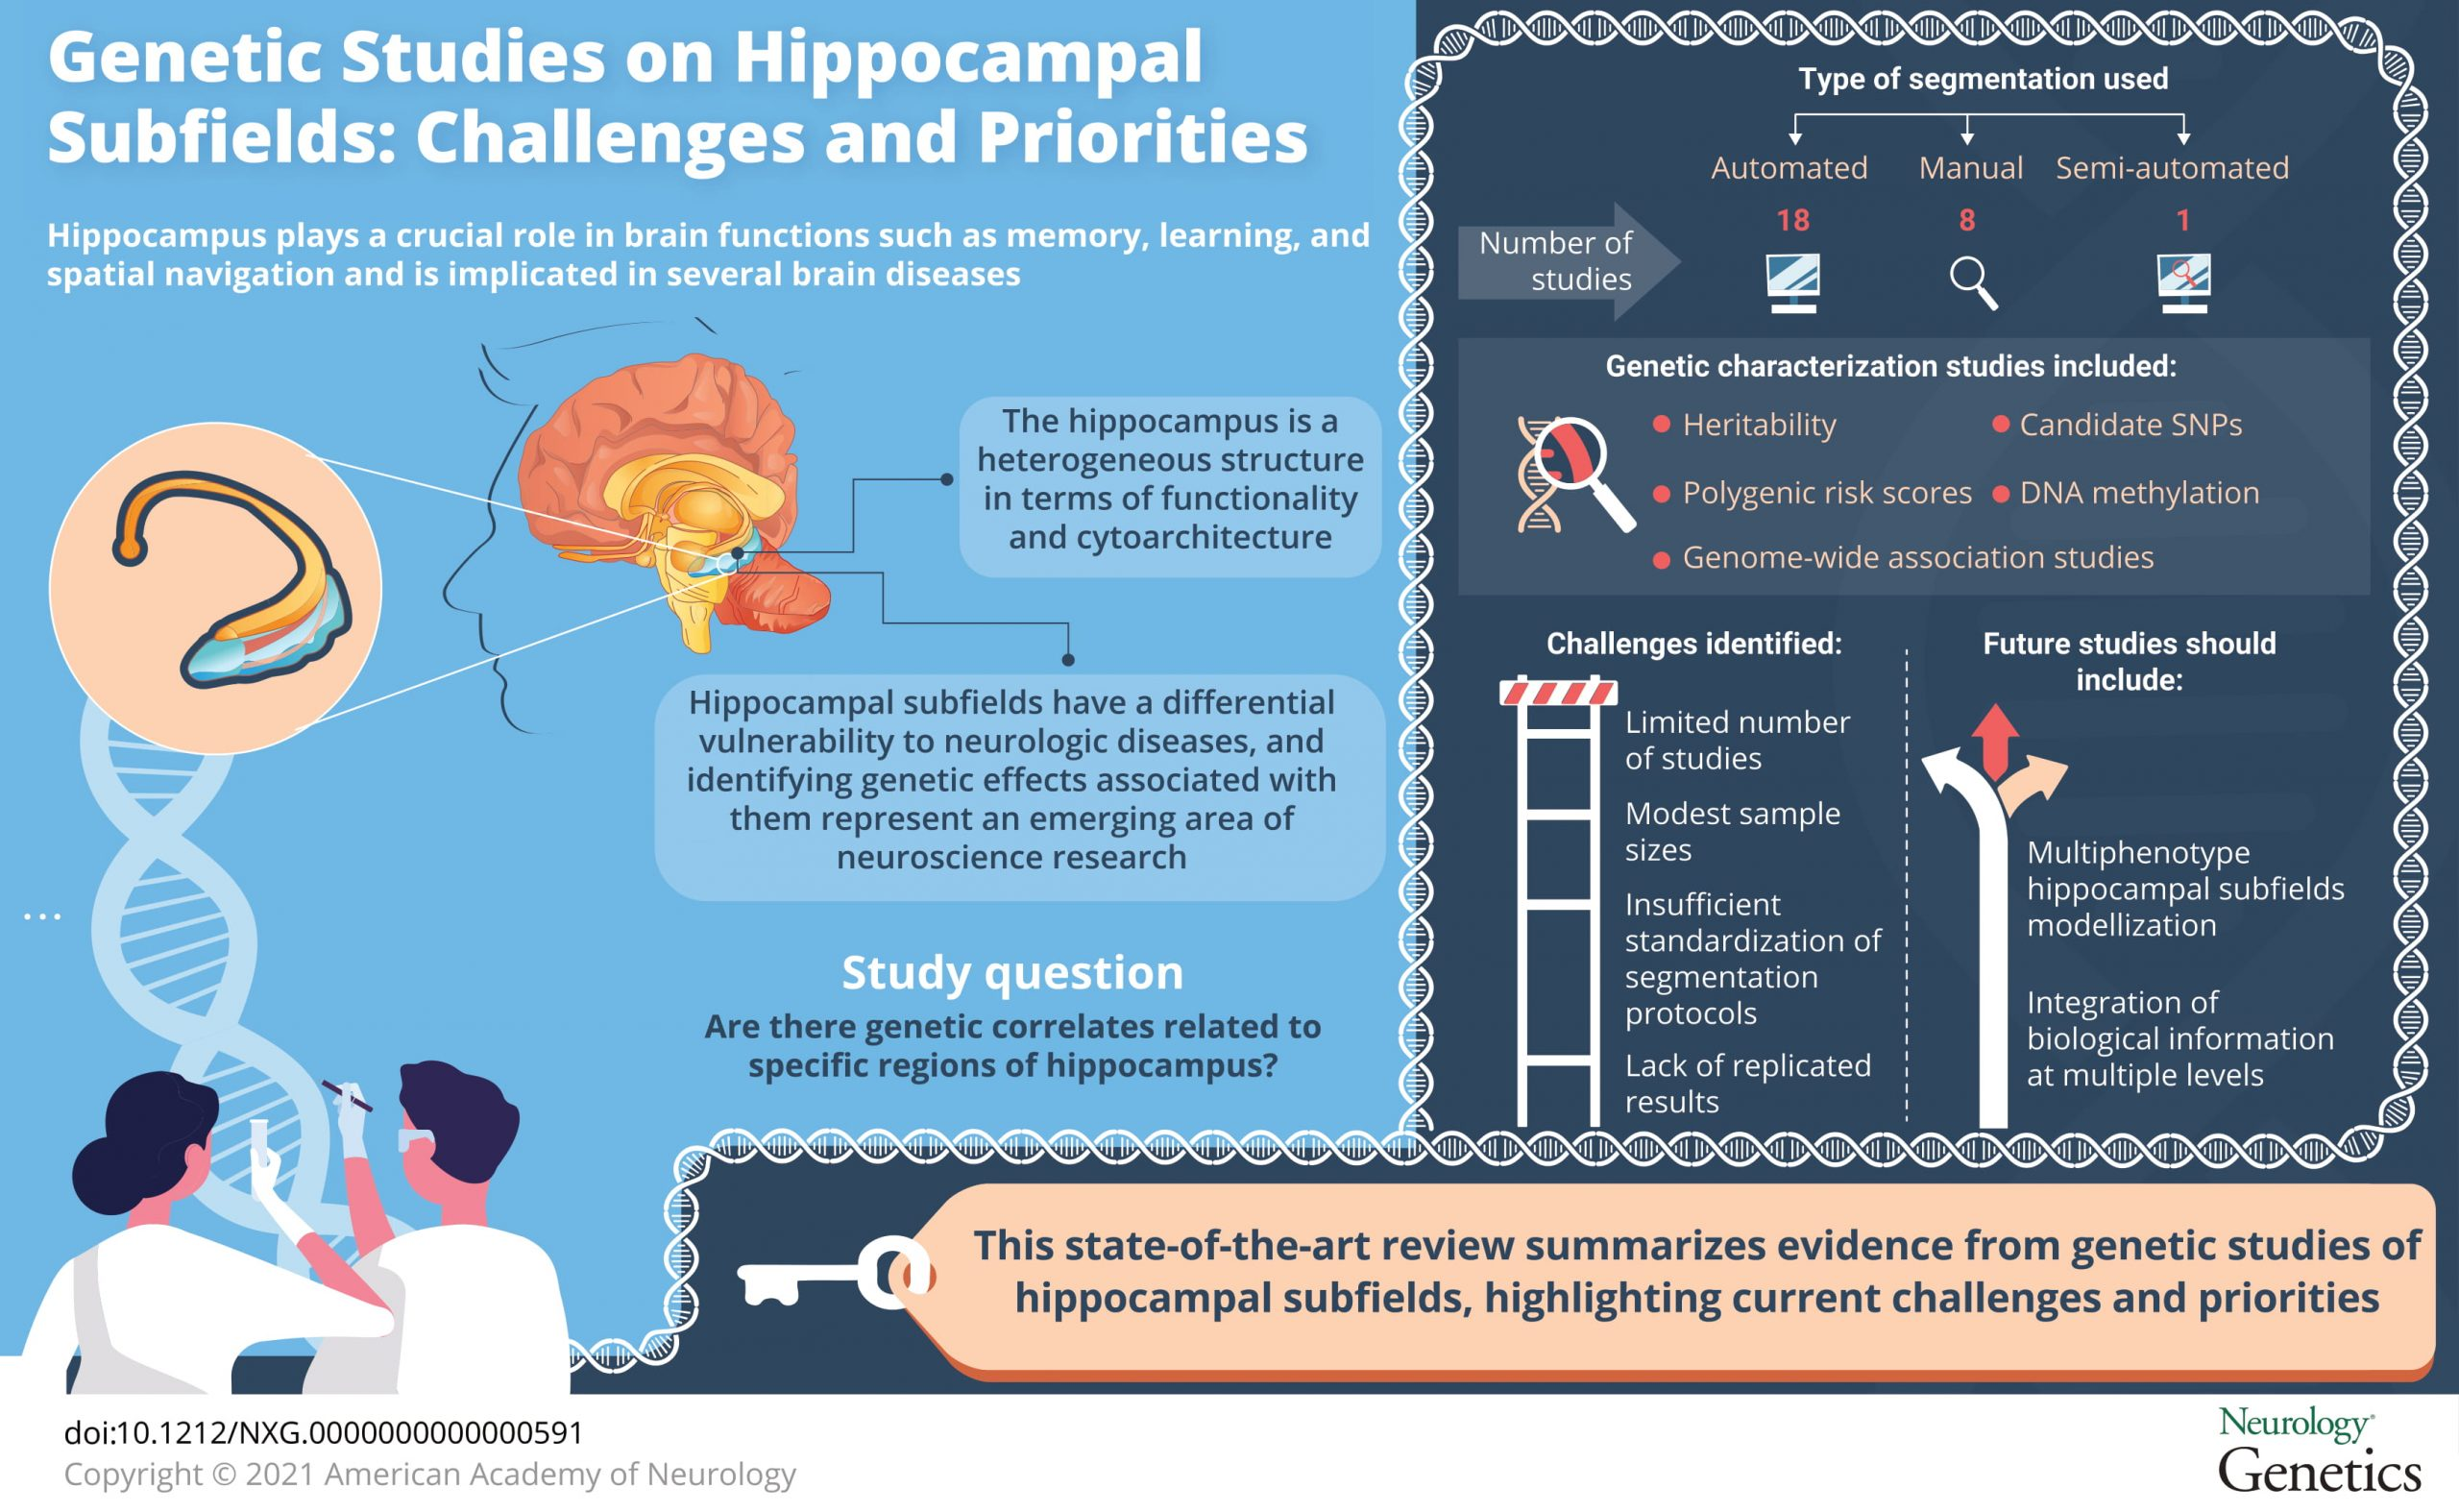 Review on genetic influences on hippocampal subfields published in Neurology Genetics